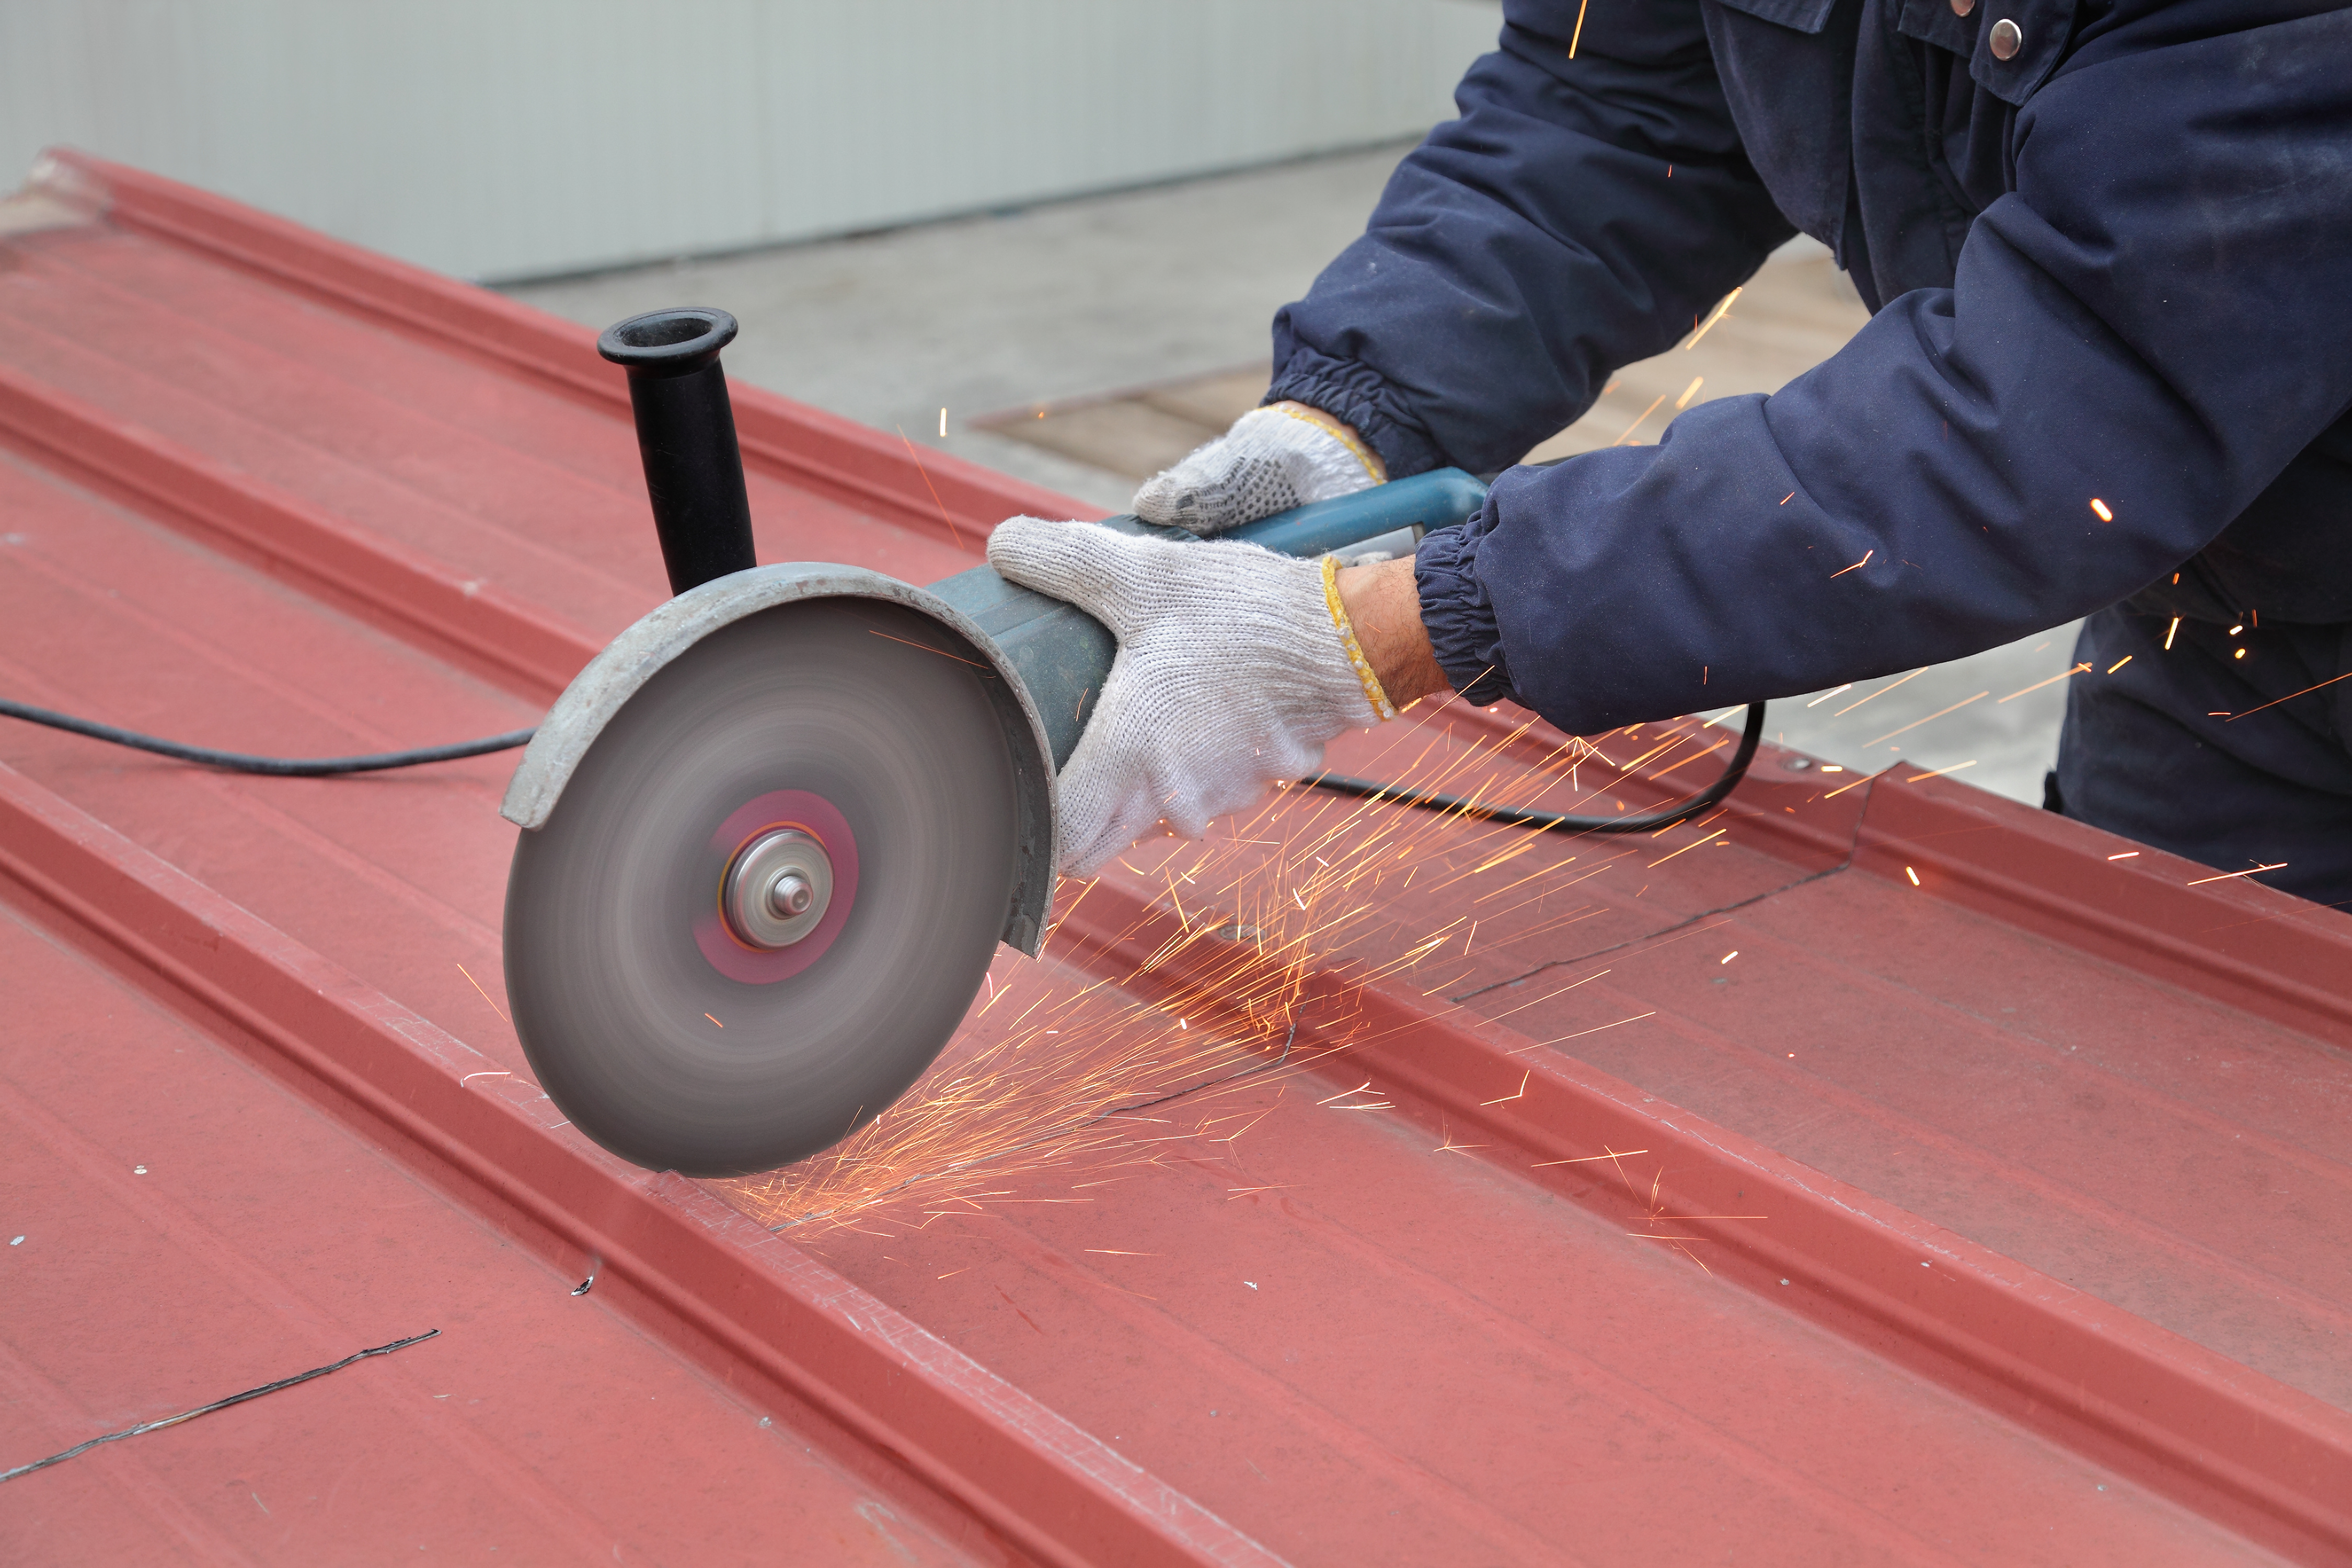 HOW TO REPAIR DAMAGES OF THE INSULATED METAL PANEL